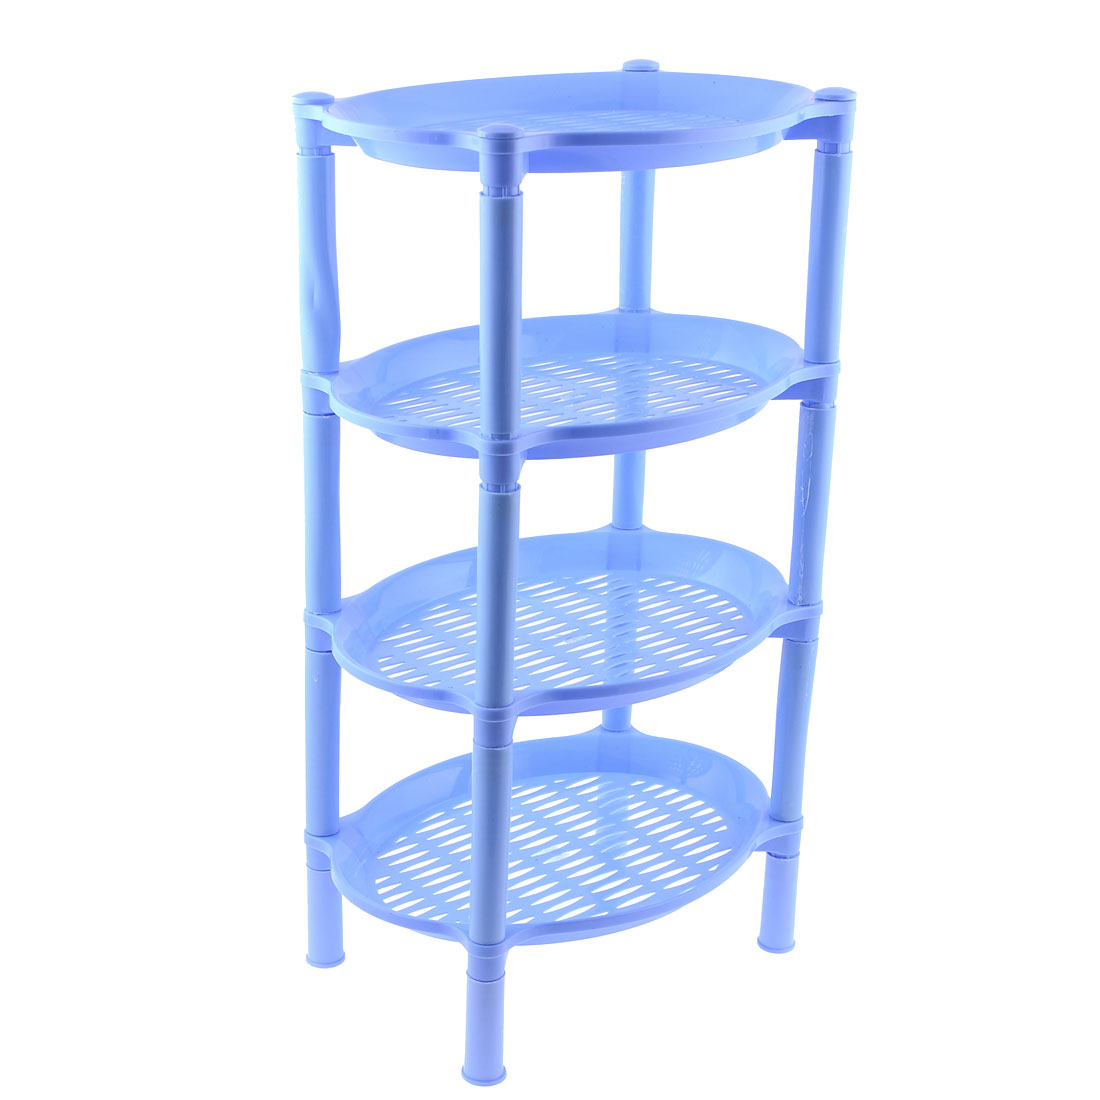 "20"" High Detachable Oval Design Cyan Plastic Mini Storage Shelf Rack"